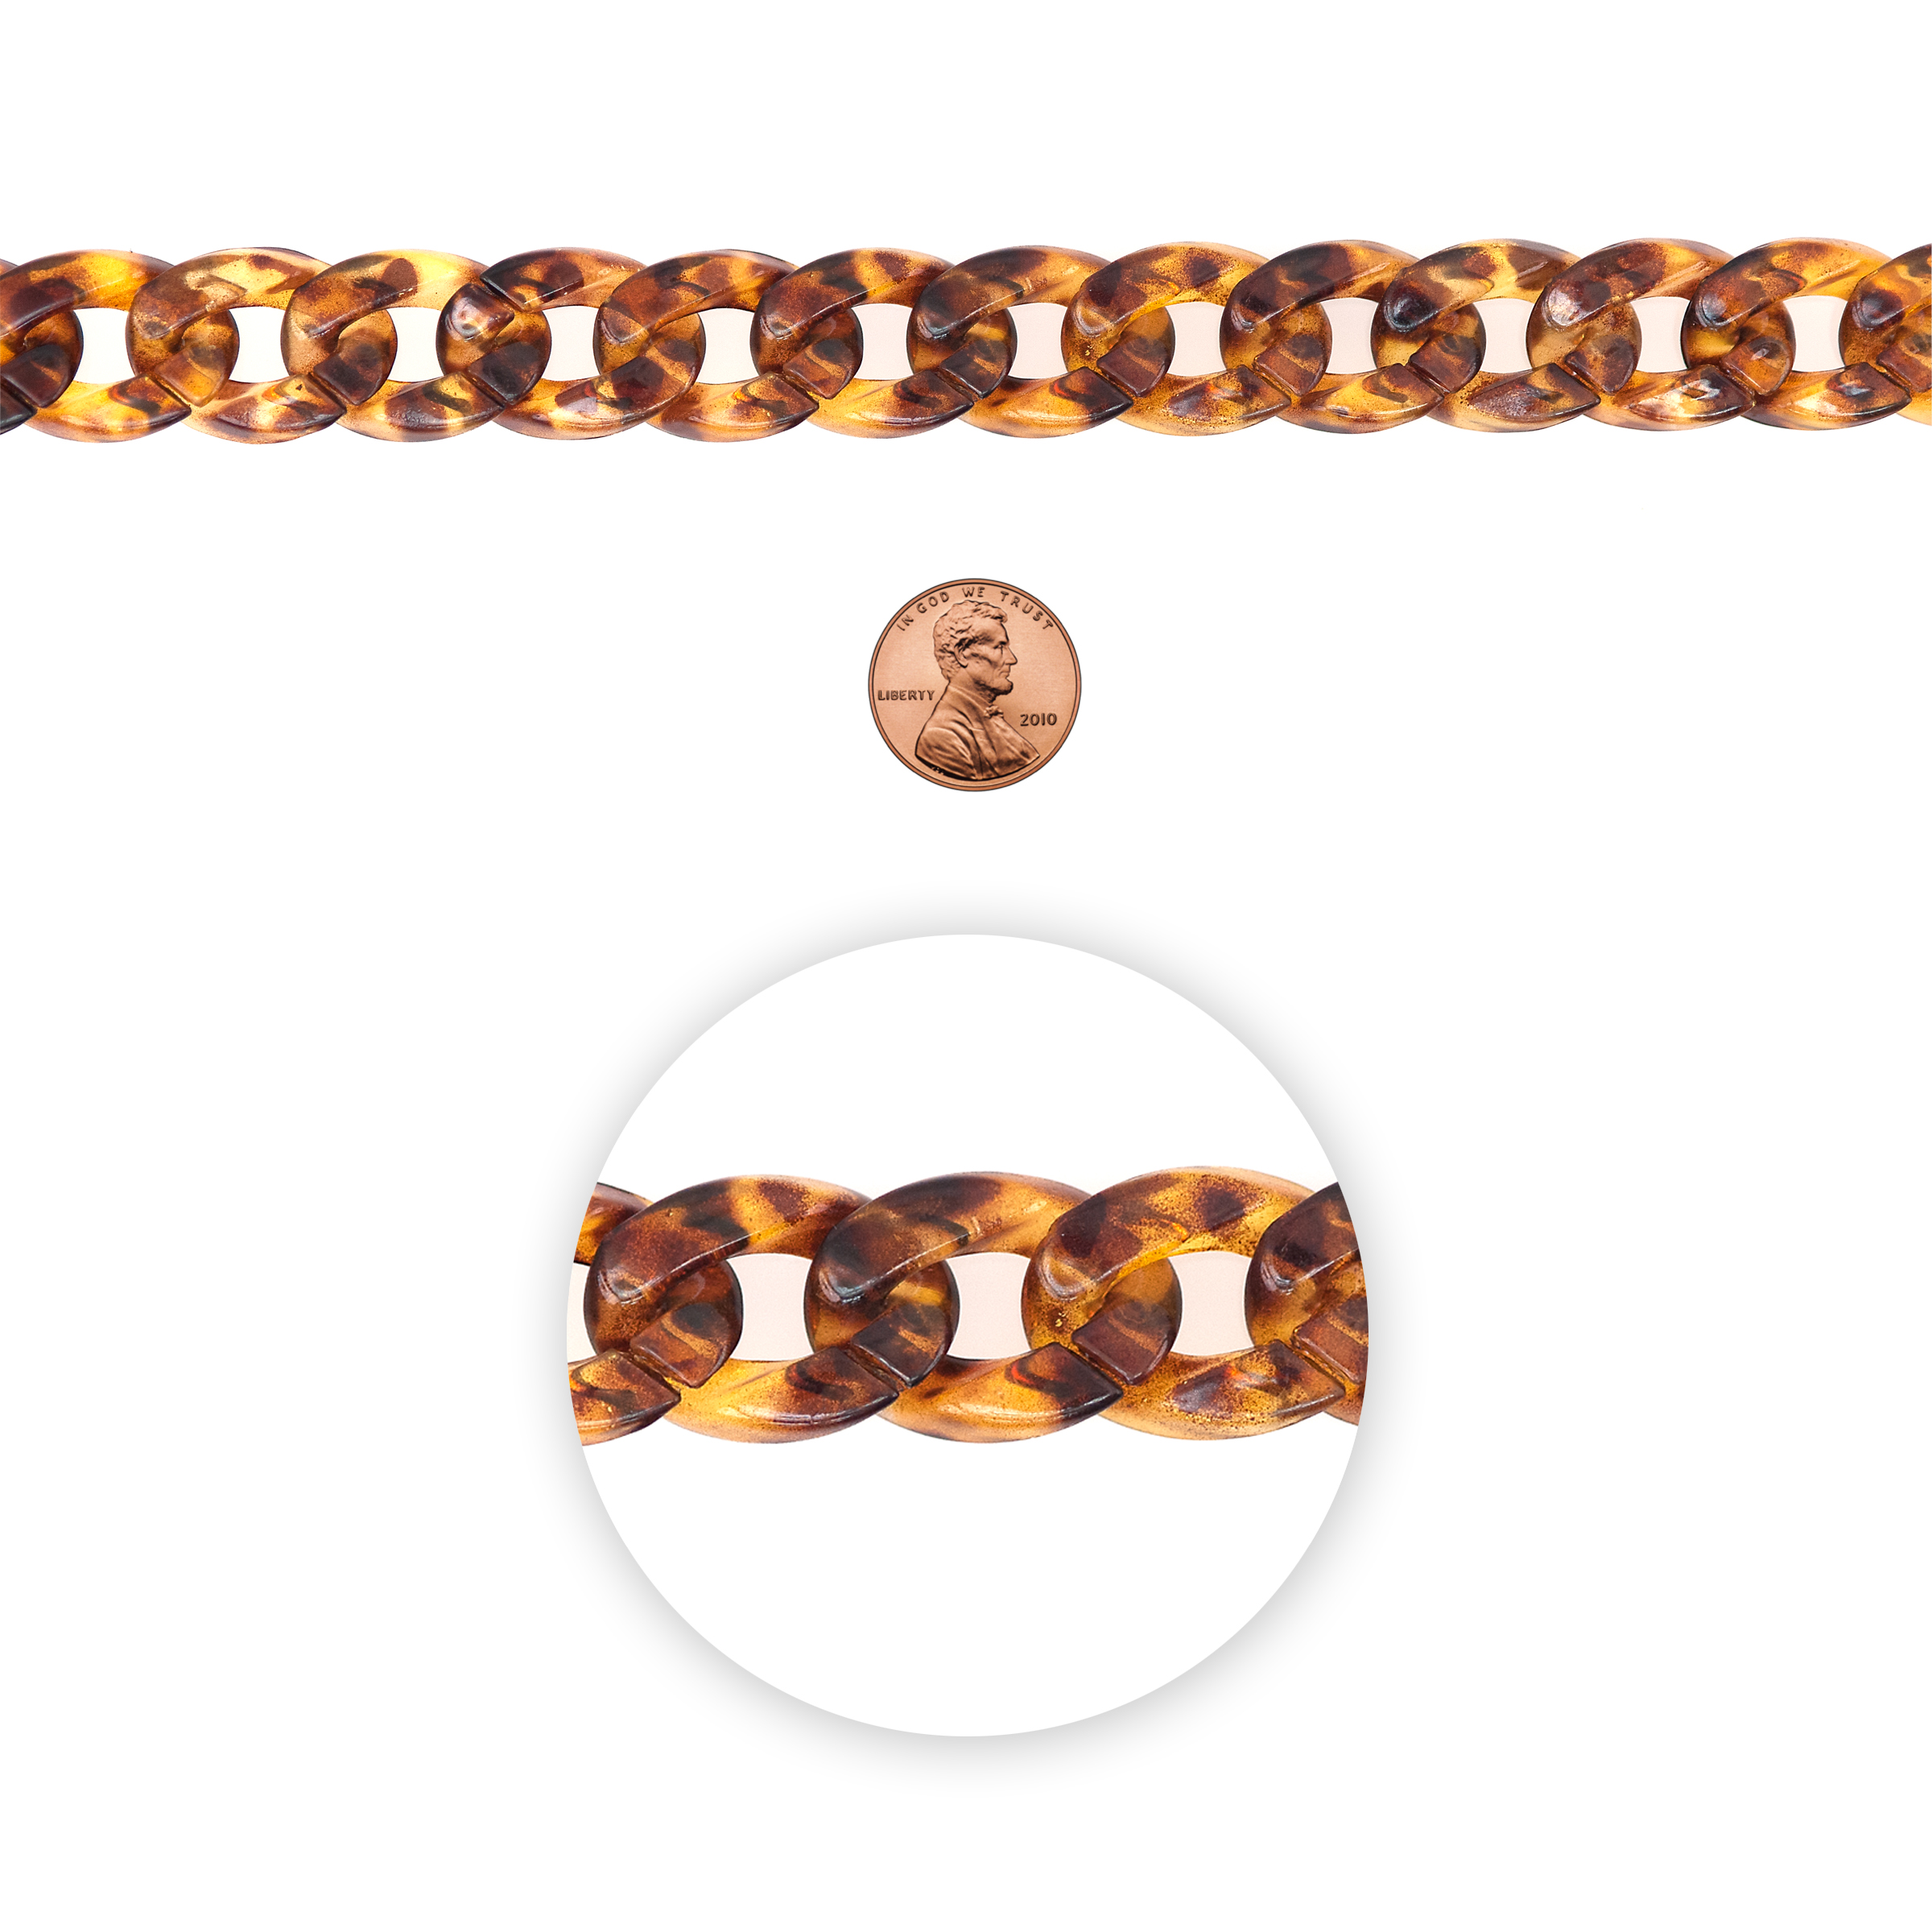 Blue Moon Beads Chain, Curb Link, Tortoise Shell Acrylic, Brown tones